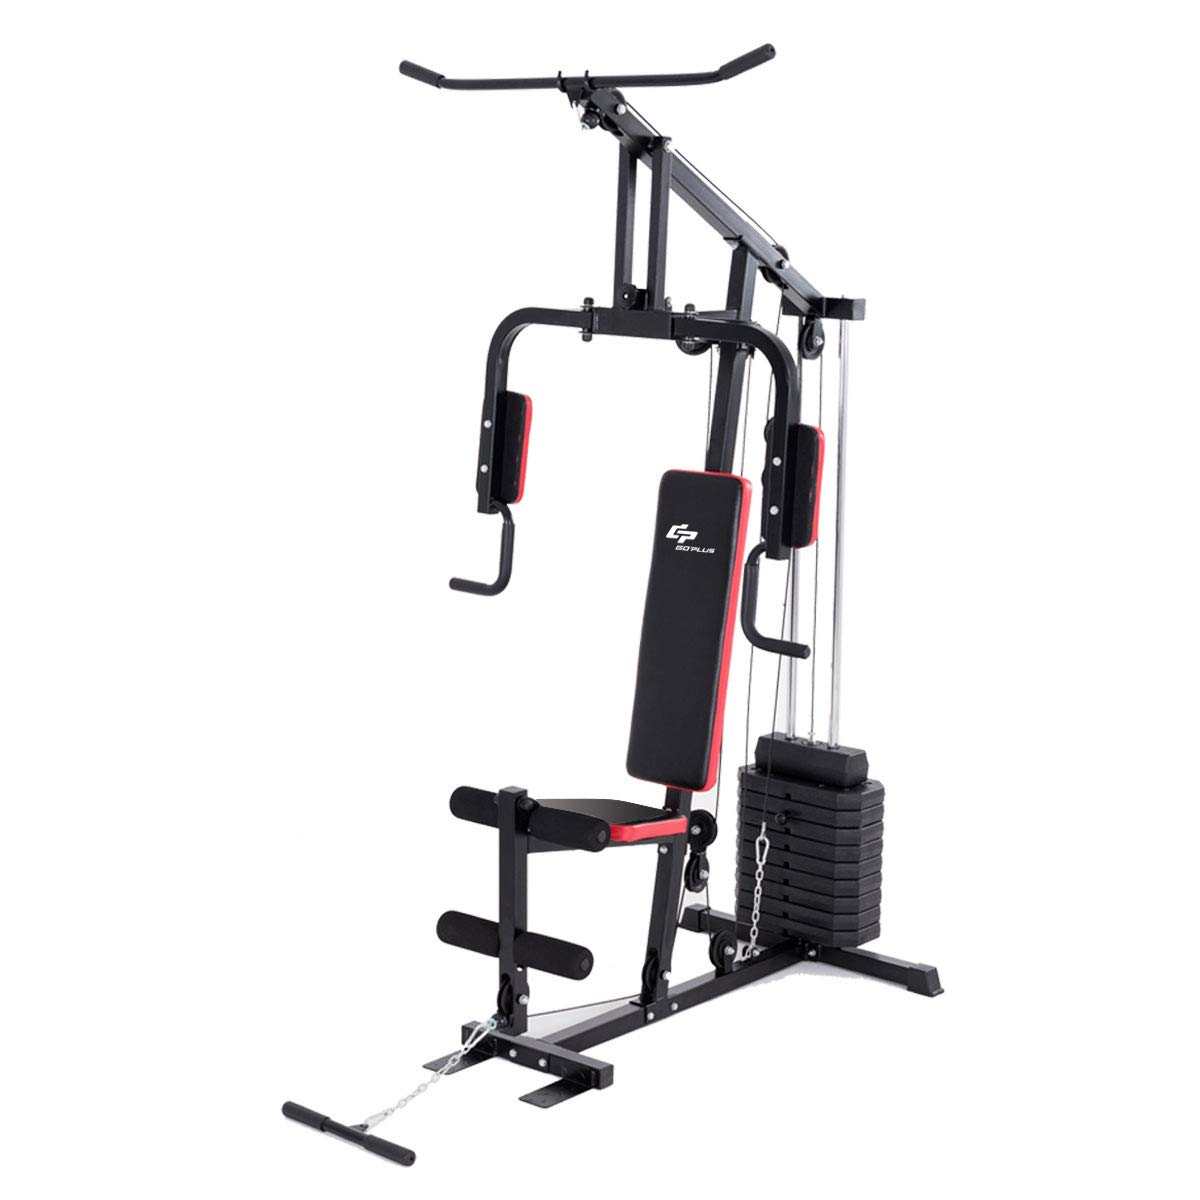 19d973dbe77 Amazon.com   Goplus Multifunction Home Gym System Weight Training Exercise  Workout Equipment Fitness Strength Machine for Total Body Training   Sports    ...